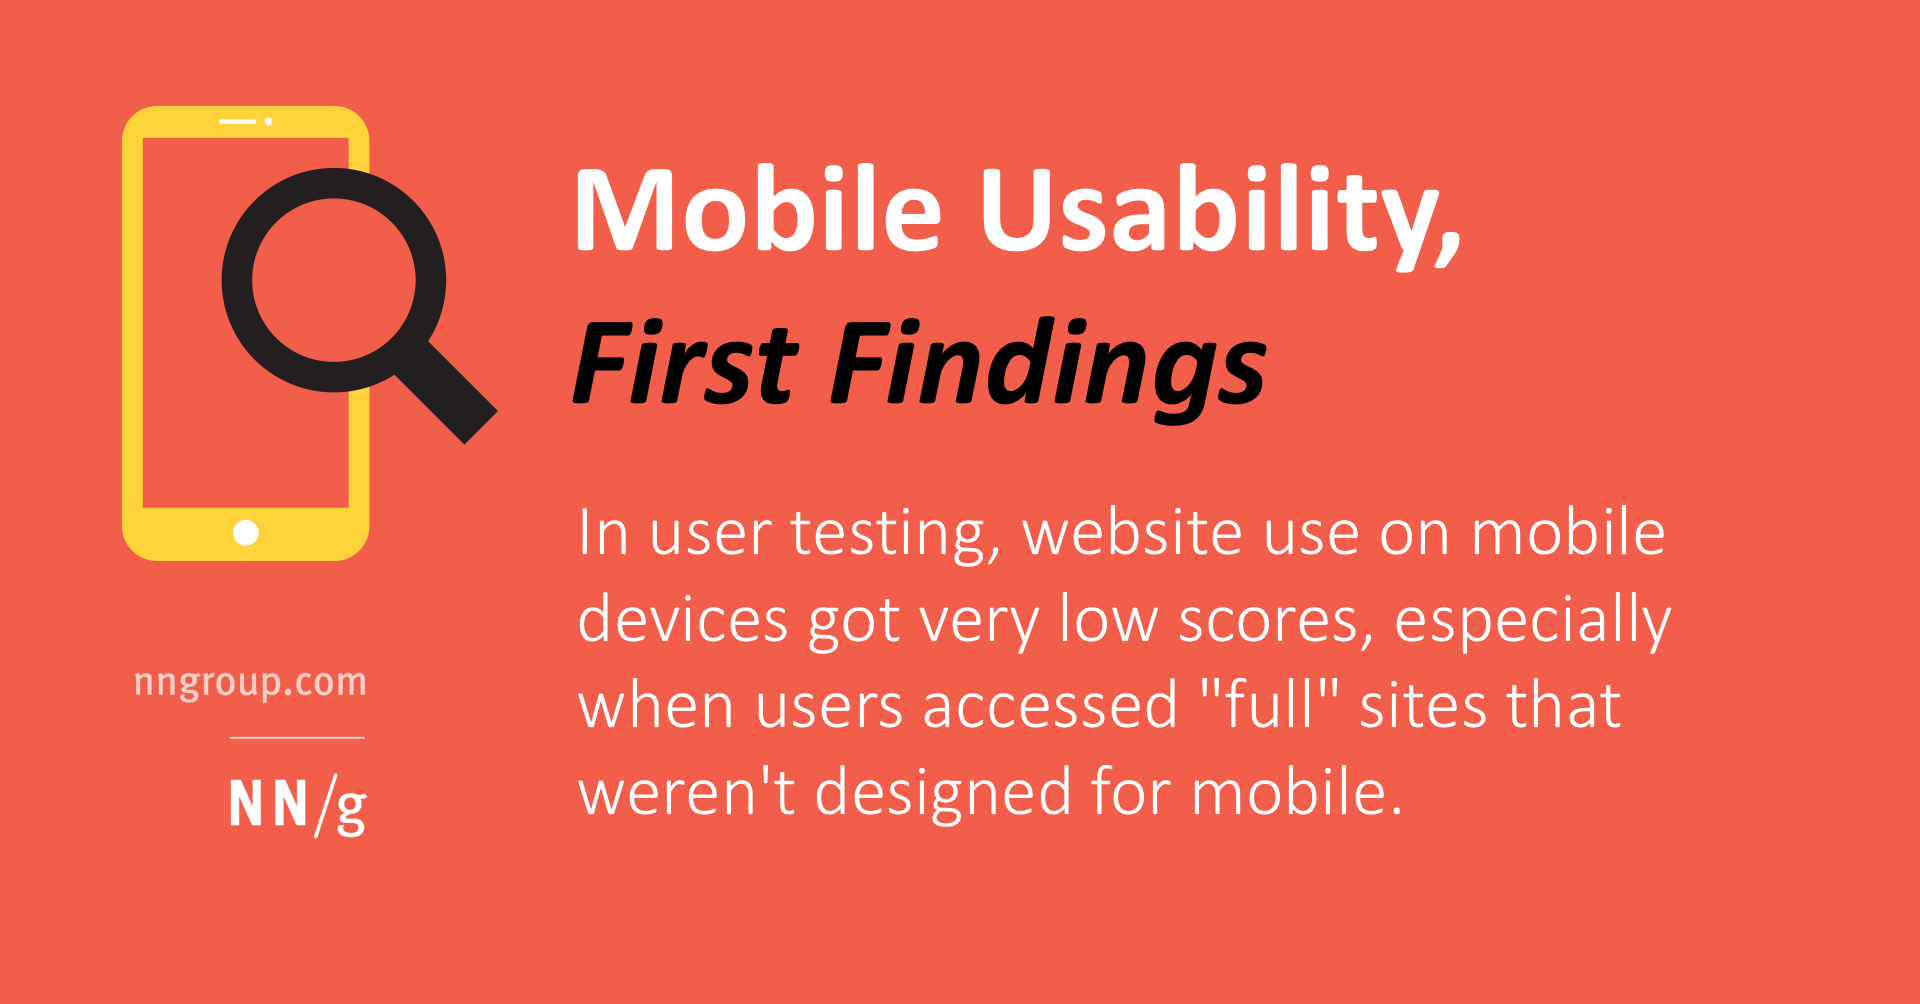 Mobile Usability, First Findings